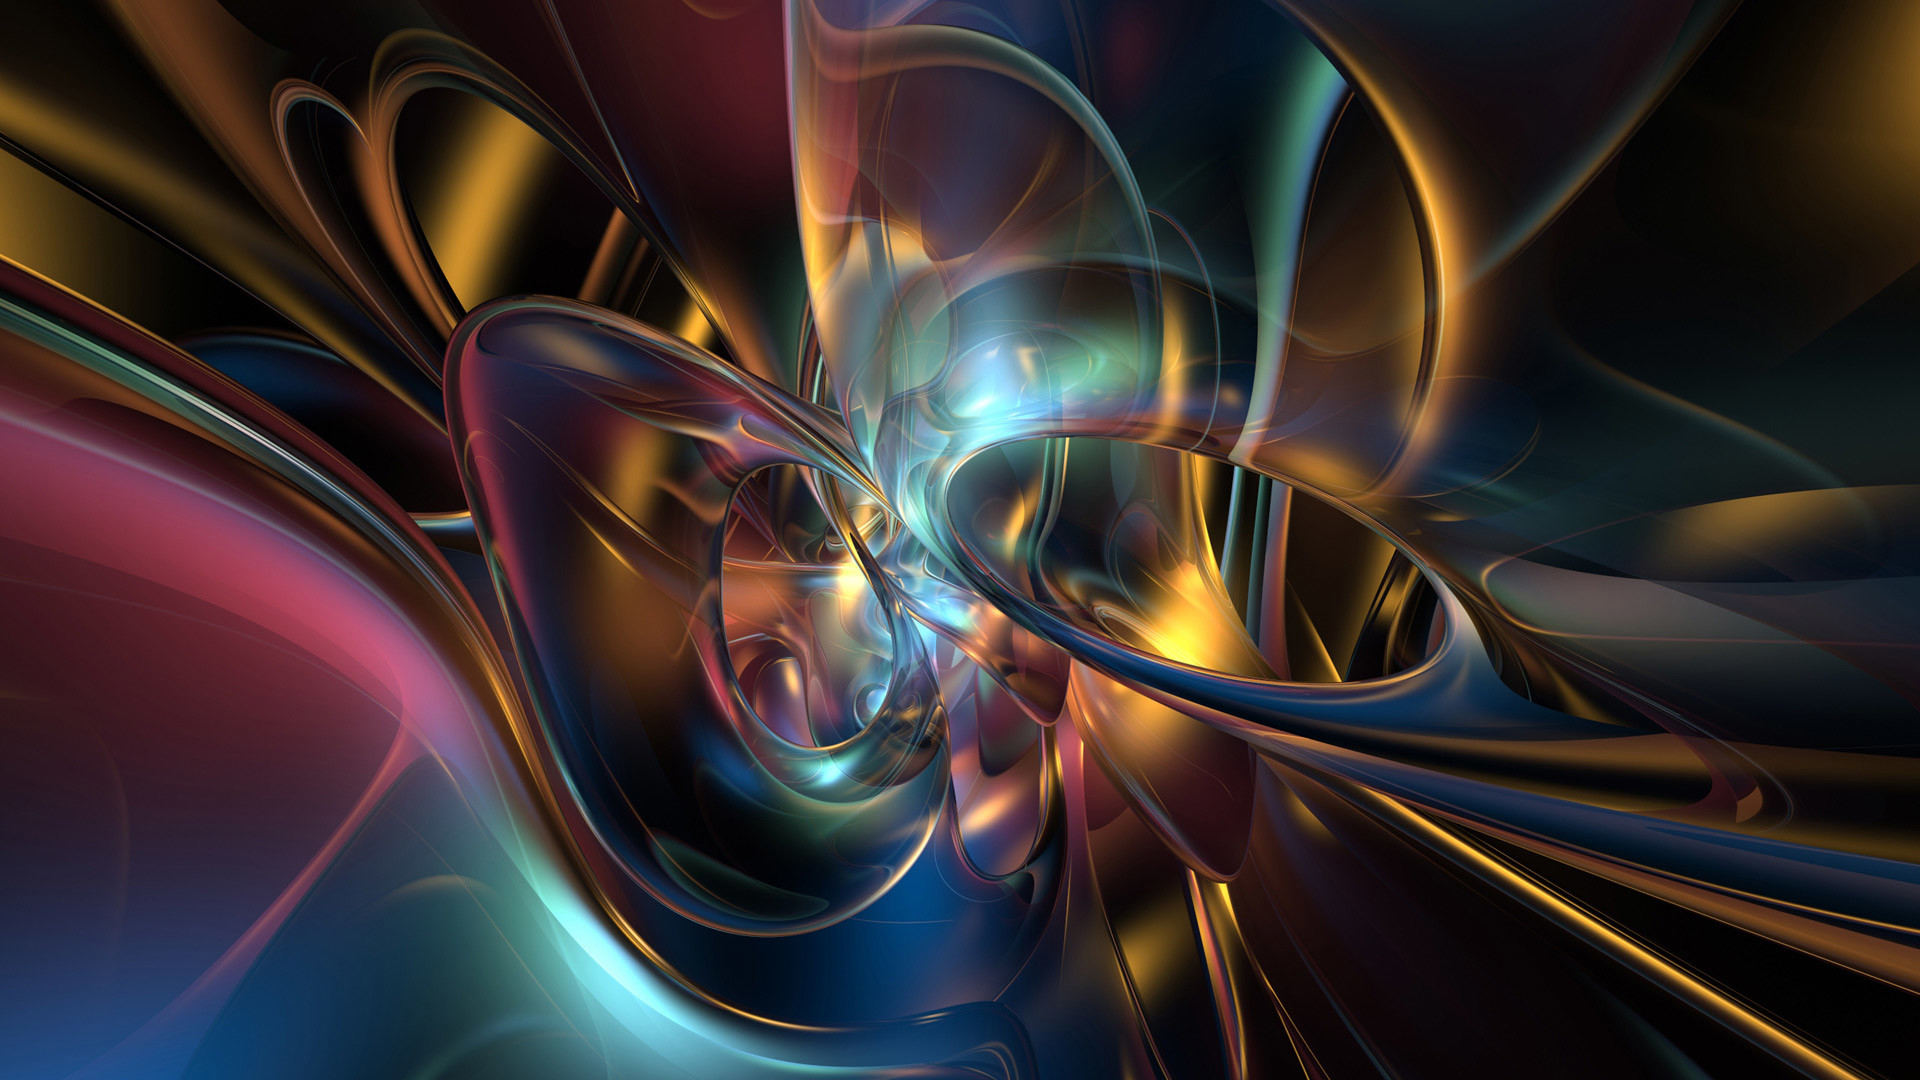 HD 3D Abstract Wallpapers 1080p (76 Wallpapers)